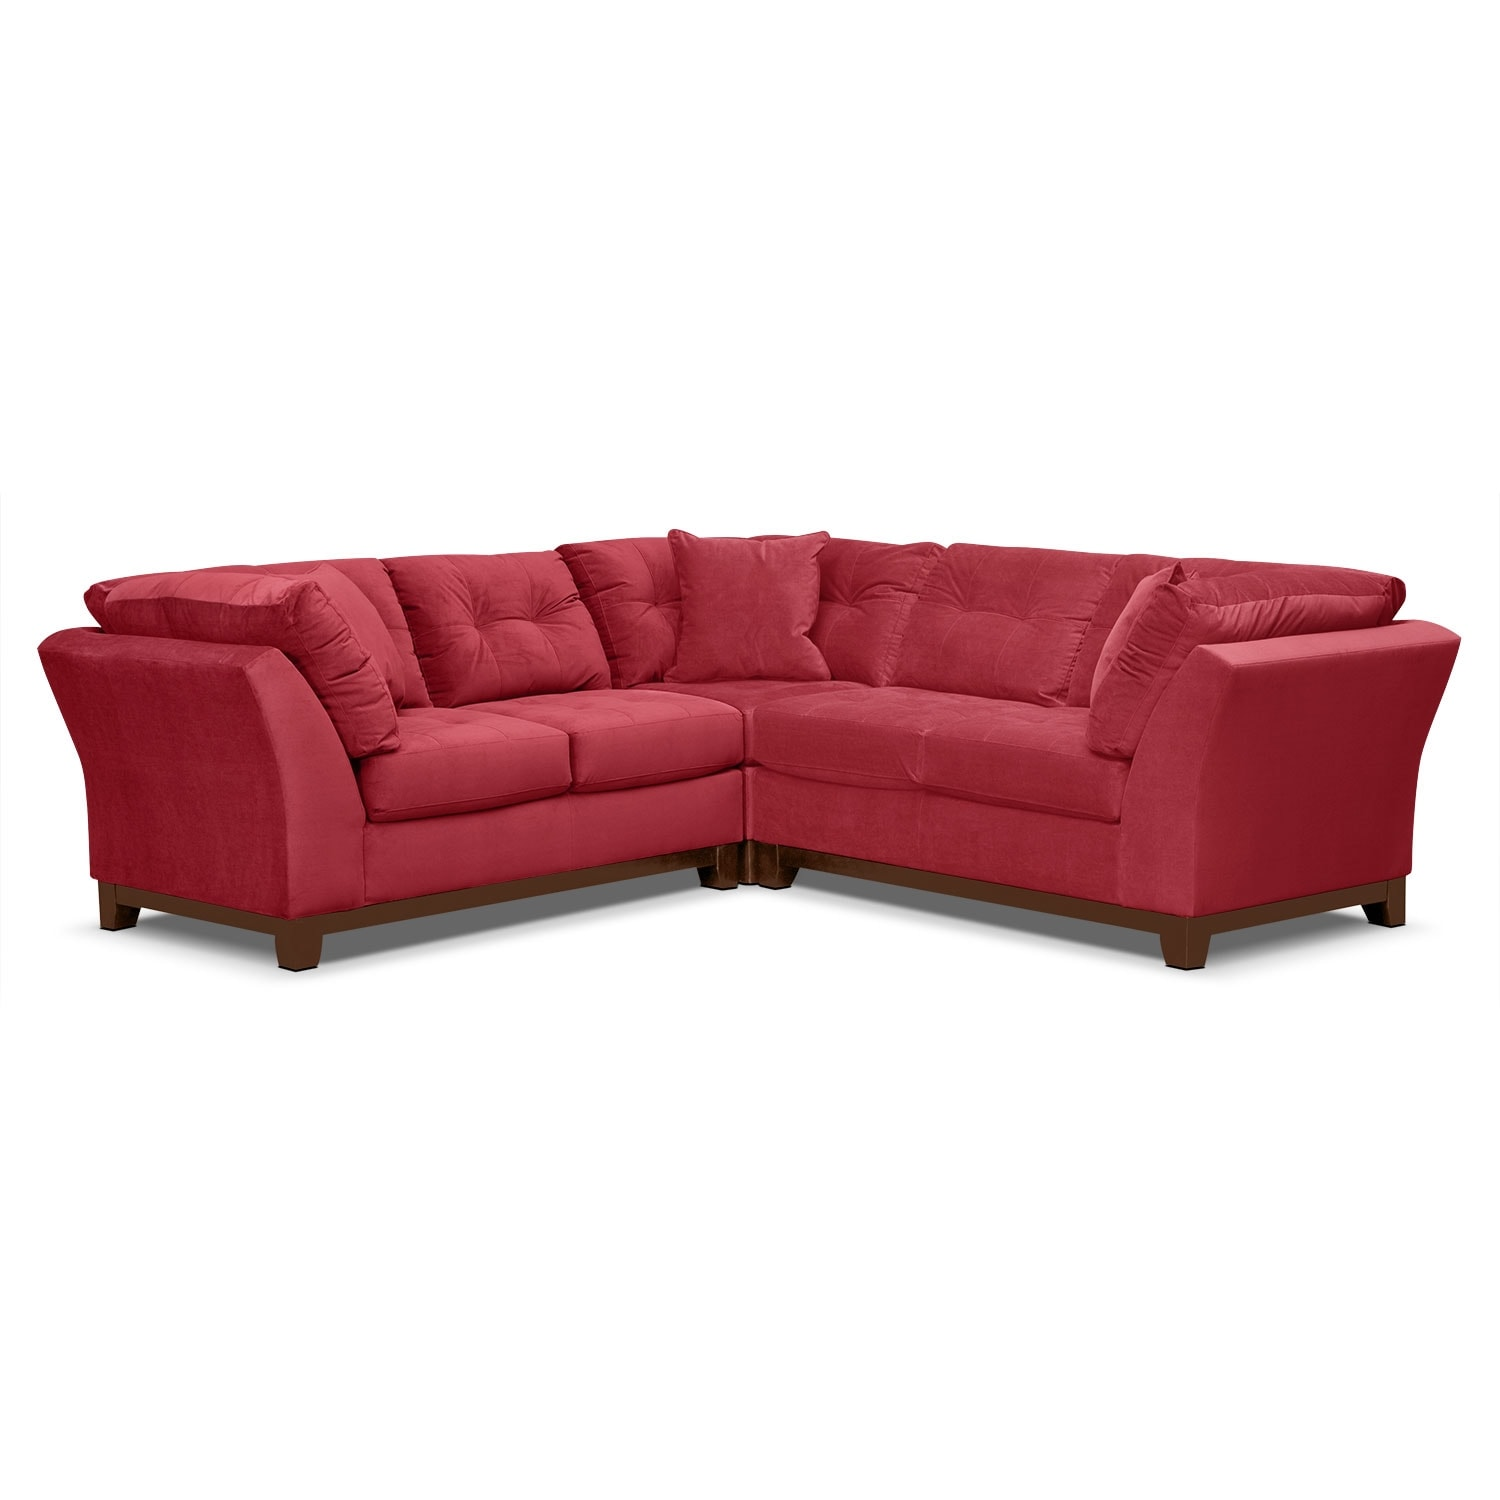 Solace 3-Piece Sectional - Poppy